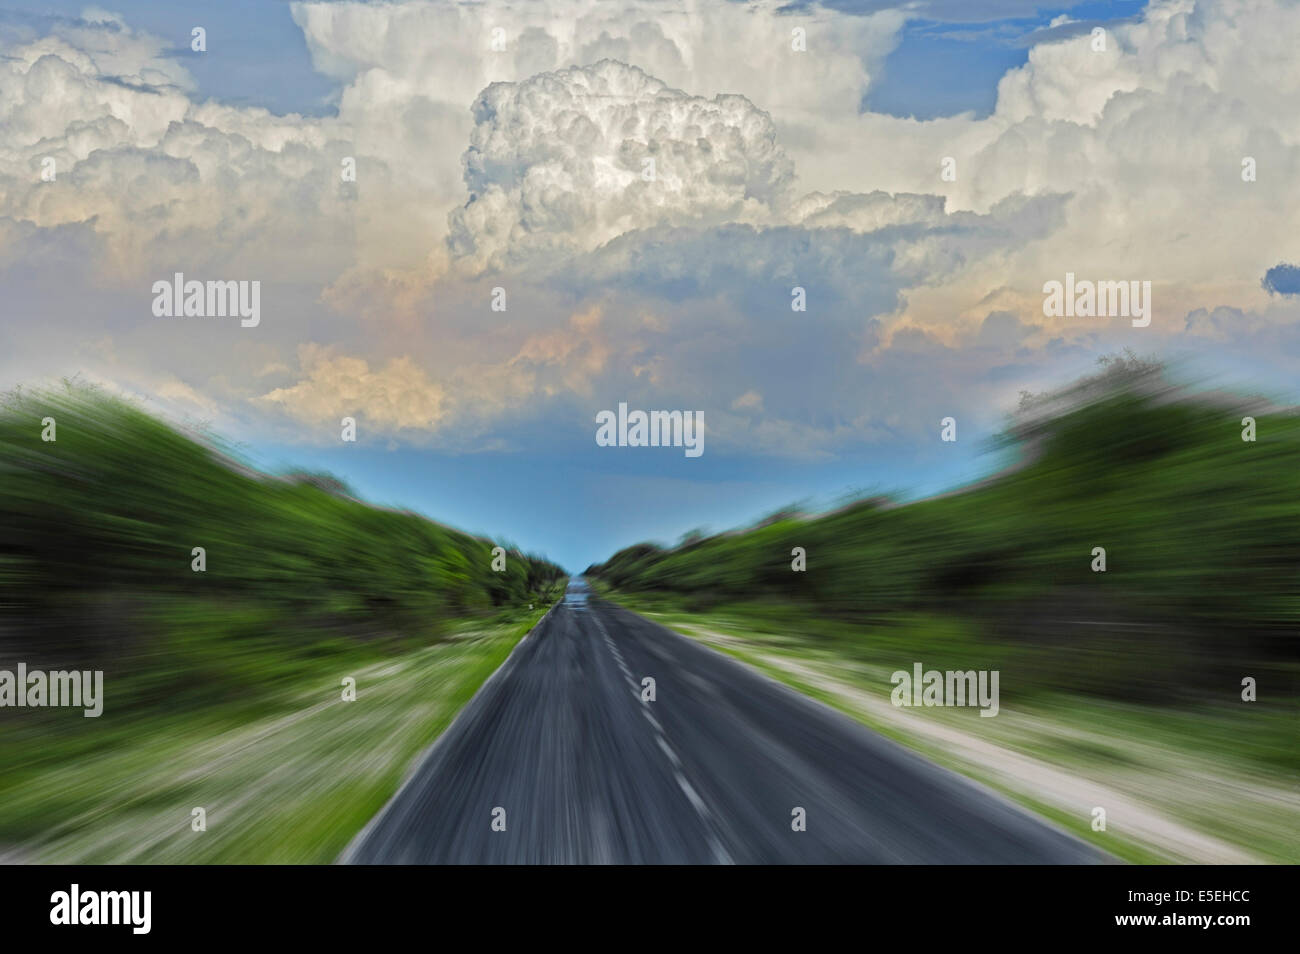 Street with zoom effect and cumulus clouds, Etosha National Park, Namibia - Stock Image